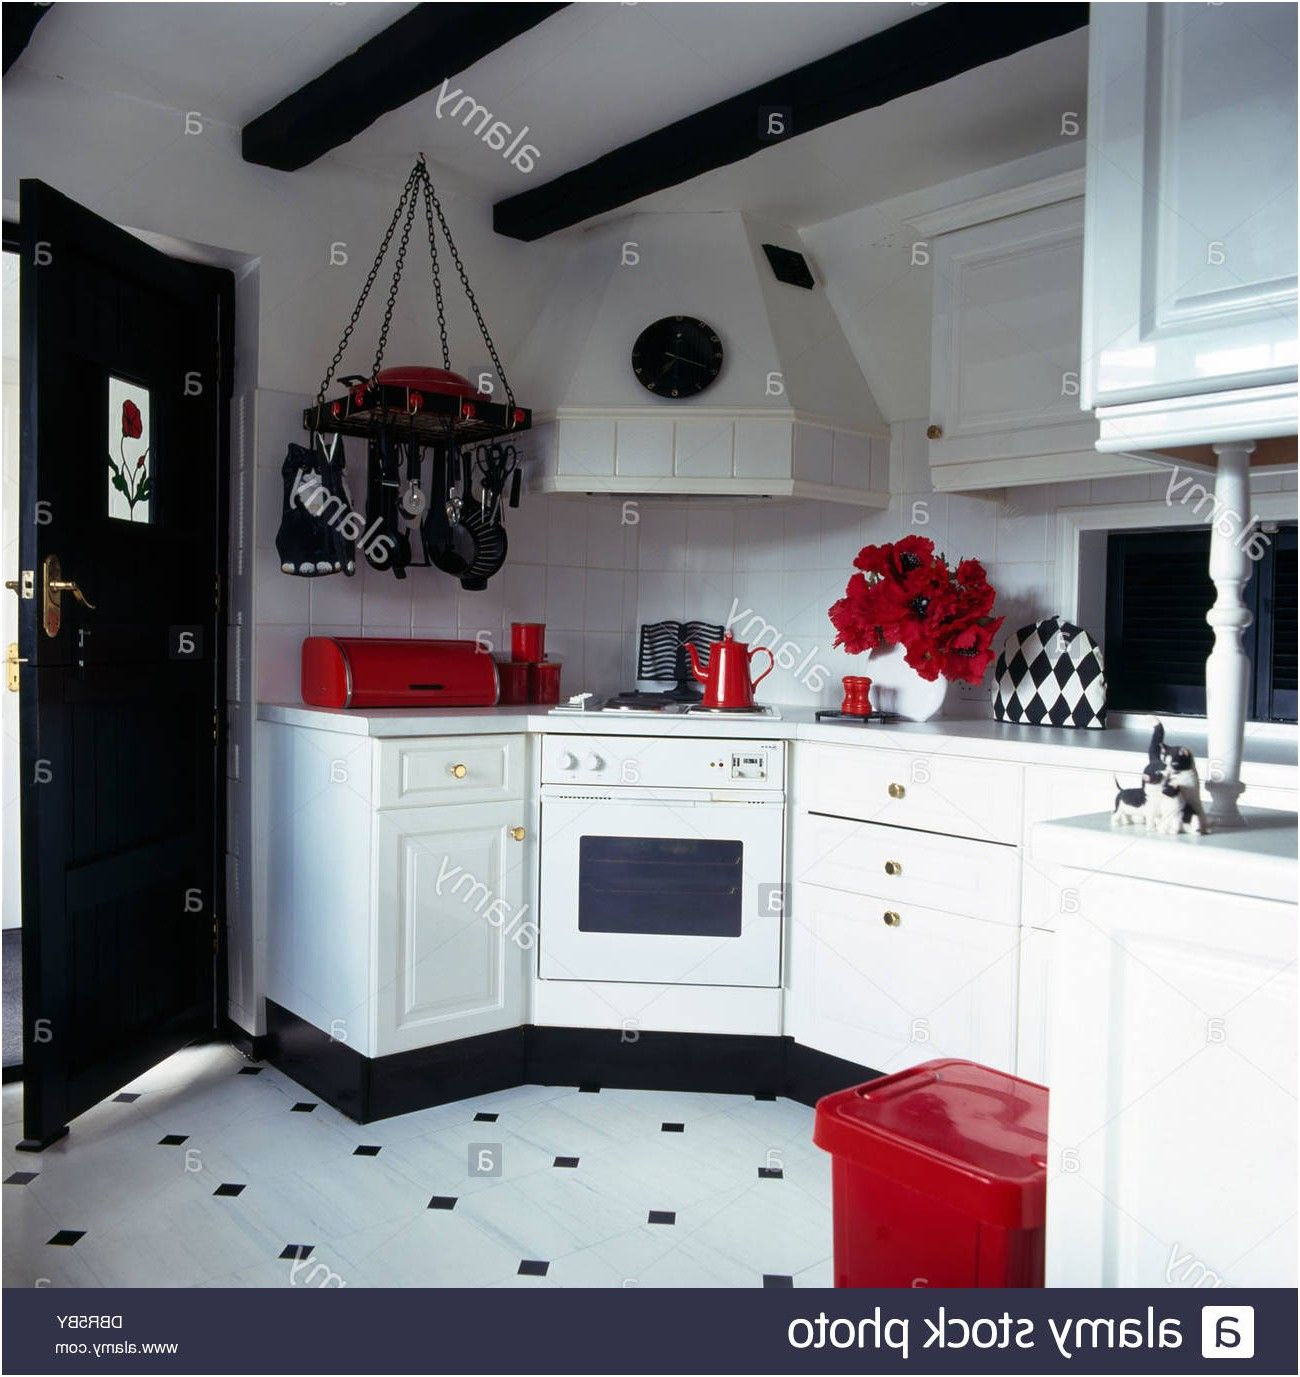 Download Wallpaper White Kitchen With Red Accessories